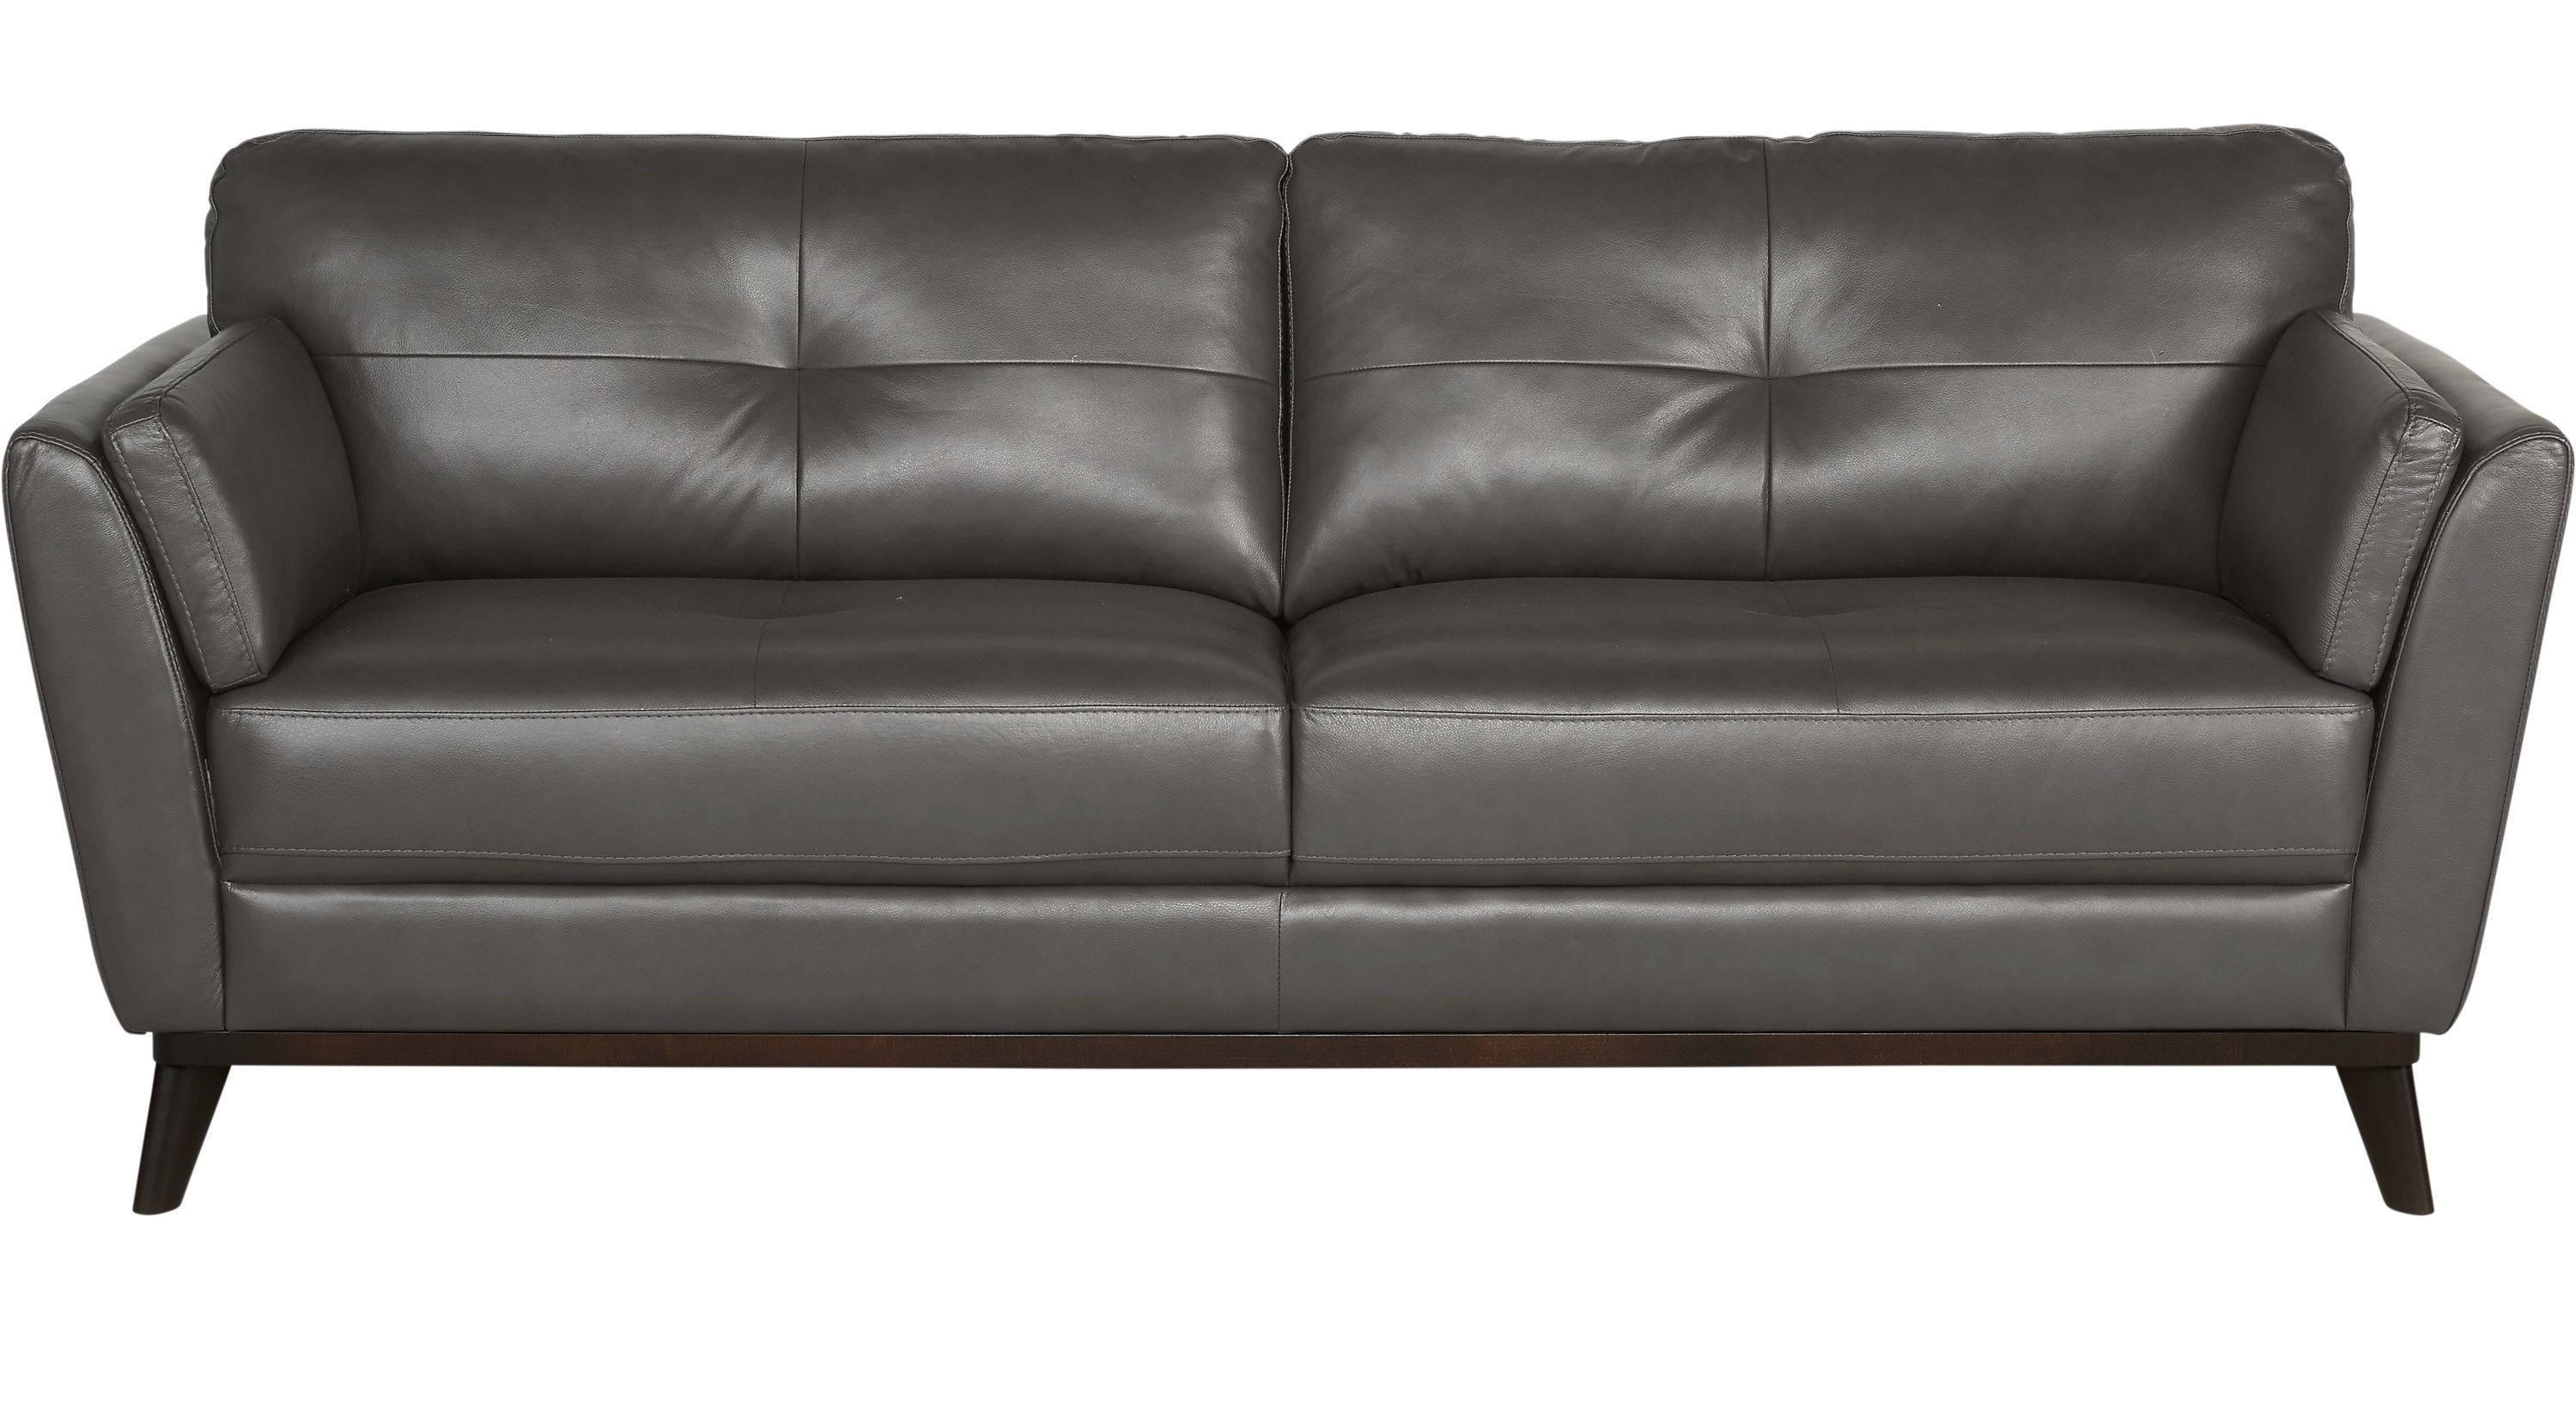 shipping plum nailhead chesterfield classic today home garden product overstock loveseat free